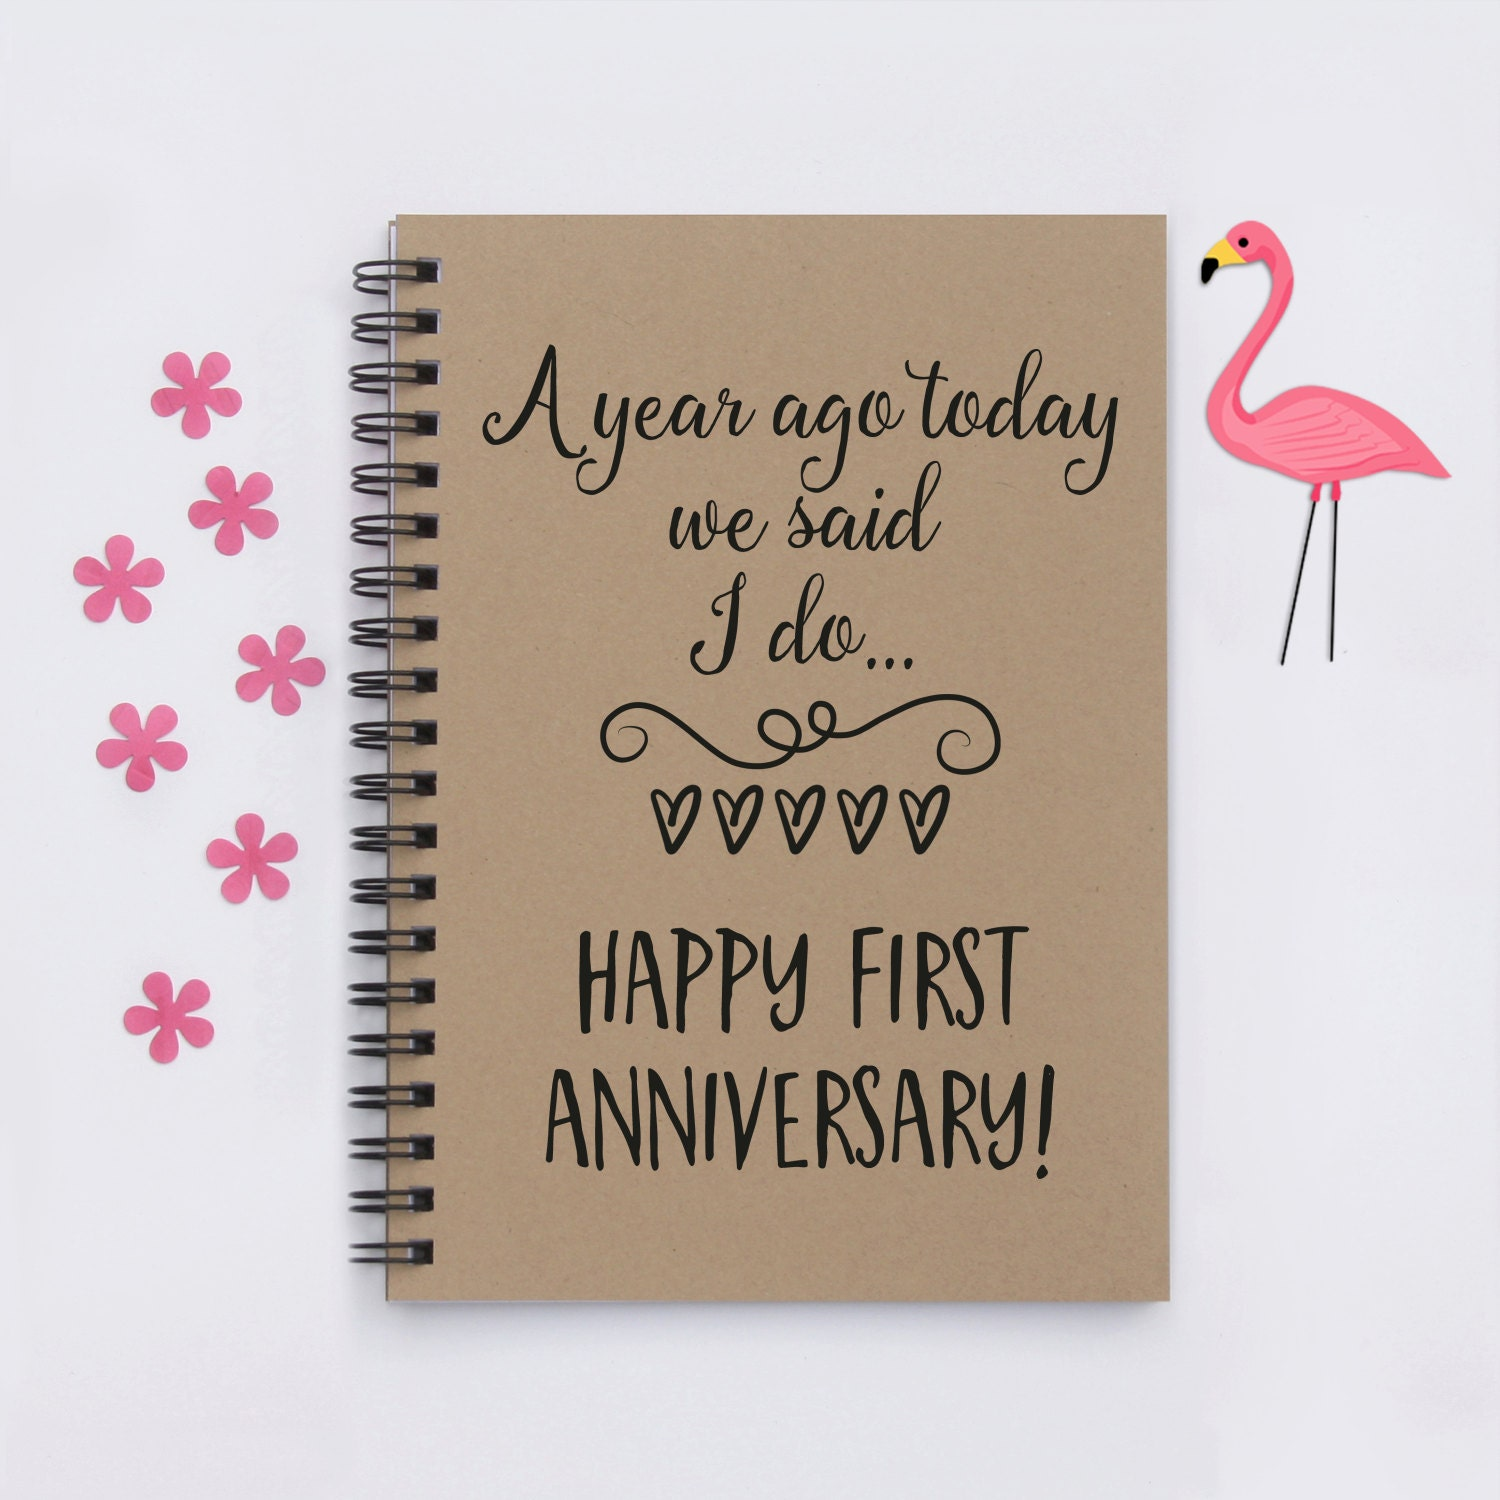 Scrapbook ideas for anniversary - Anniversary Gift For Husband A Year Ago Today We Said I Do Happy First Anniversary 5 X7 First Anniversary Journal Notebook Scrapbook